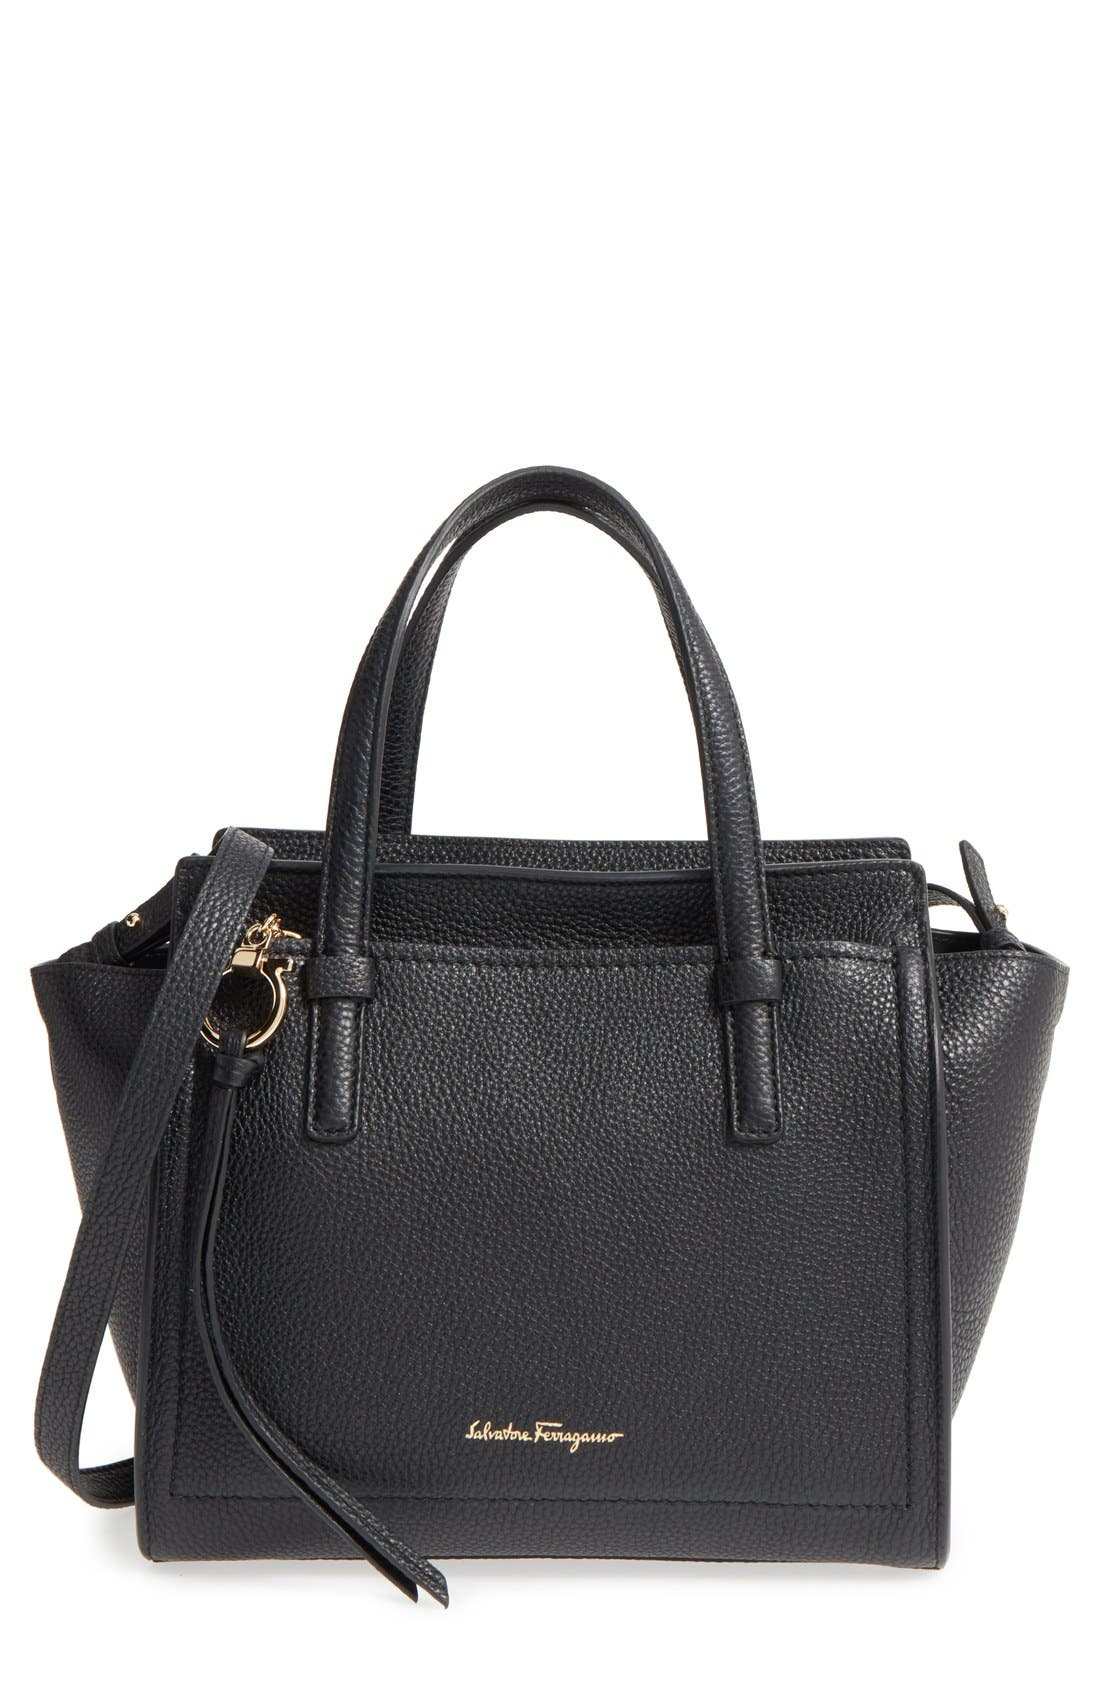 Main Image - Salvatore Ferragamo Small Pebbled Leather Tote